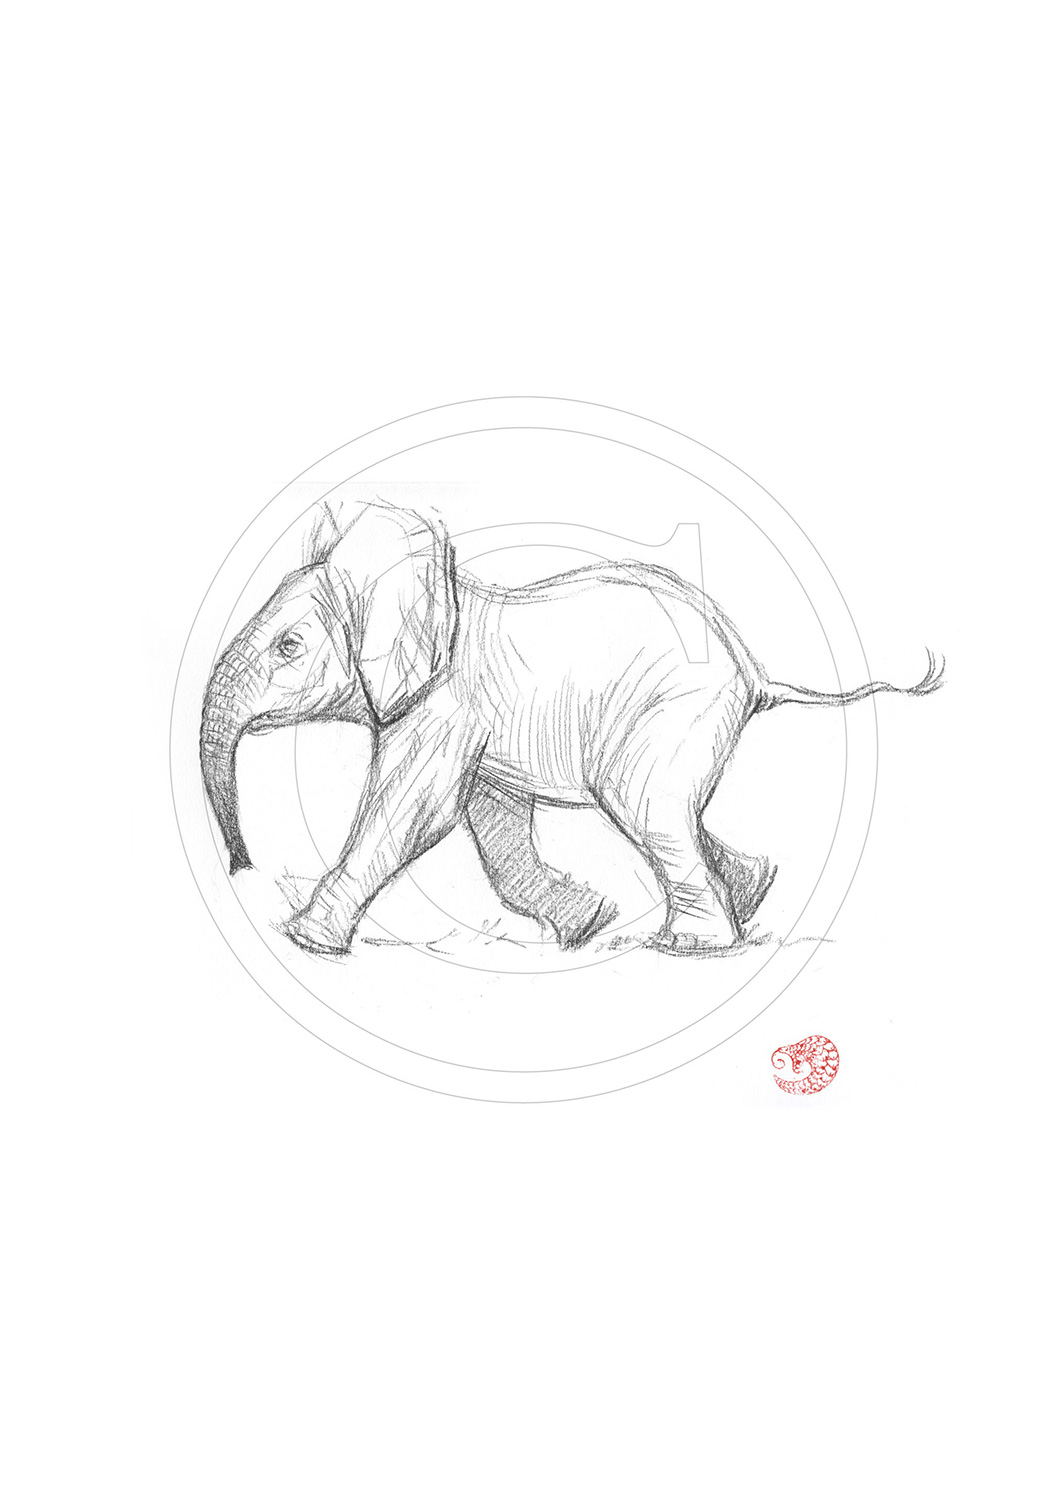 Marcello-art: Ballpoint pen drawing 291 - Baby elephant first steps